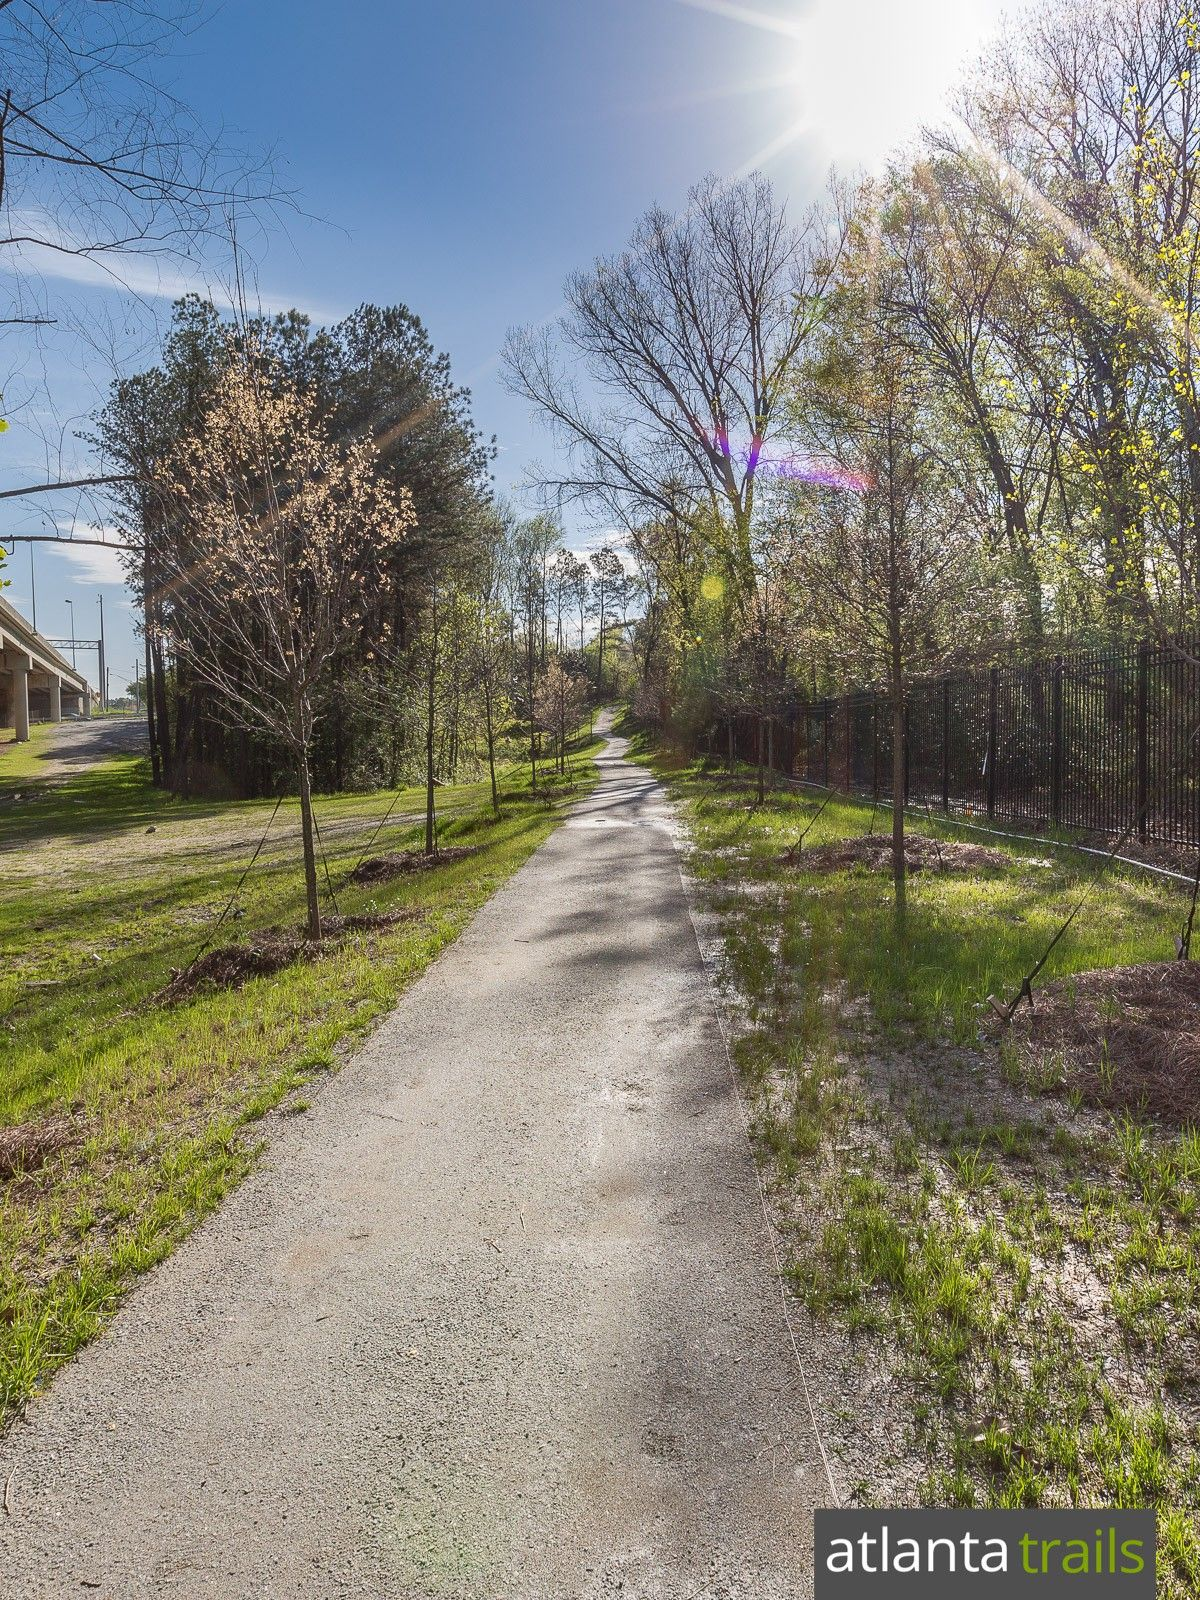 The Cheshire Farm Trail runs beside Peachtree Creek from Lindbergh Drive to Cheshire Bridge Road in Atlanta